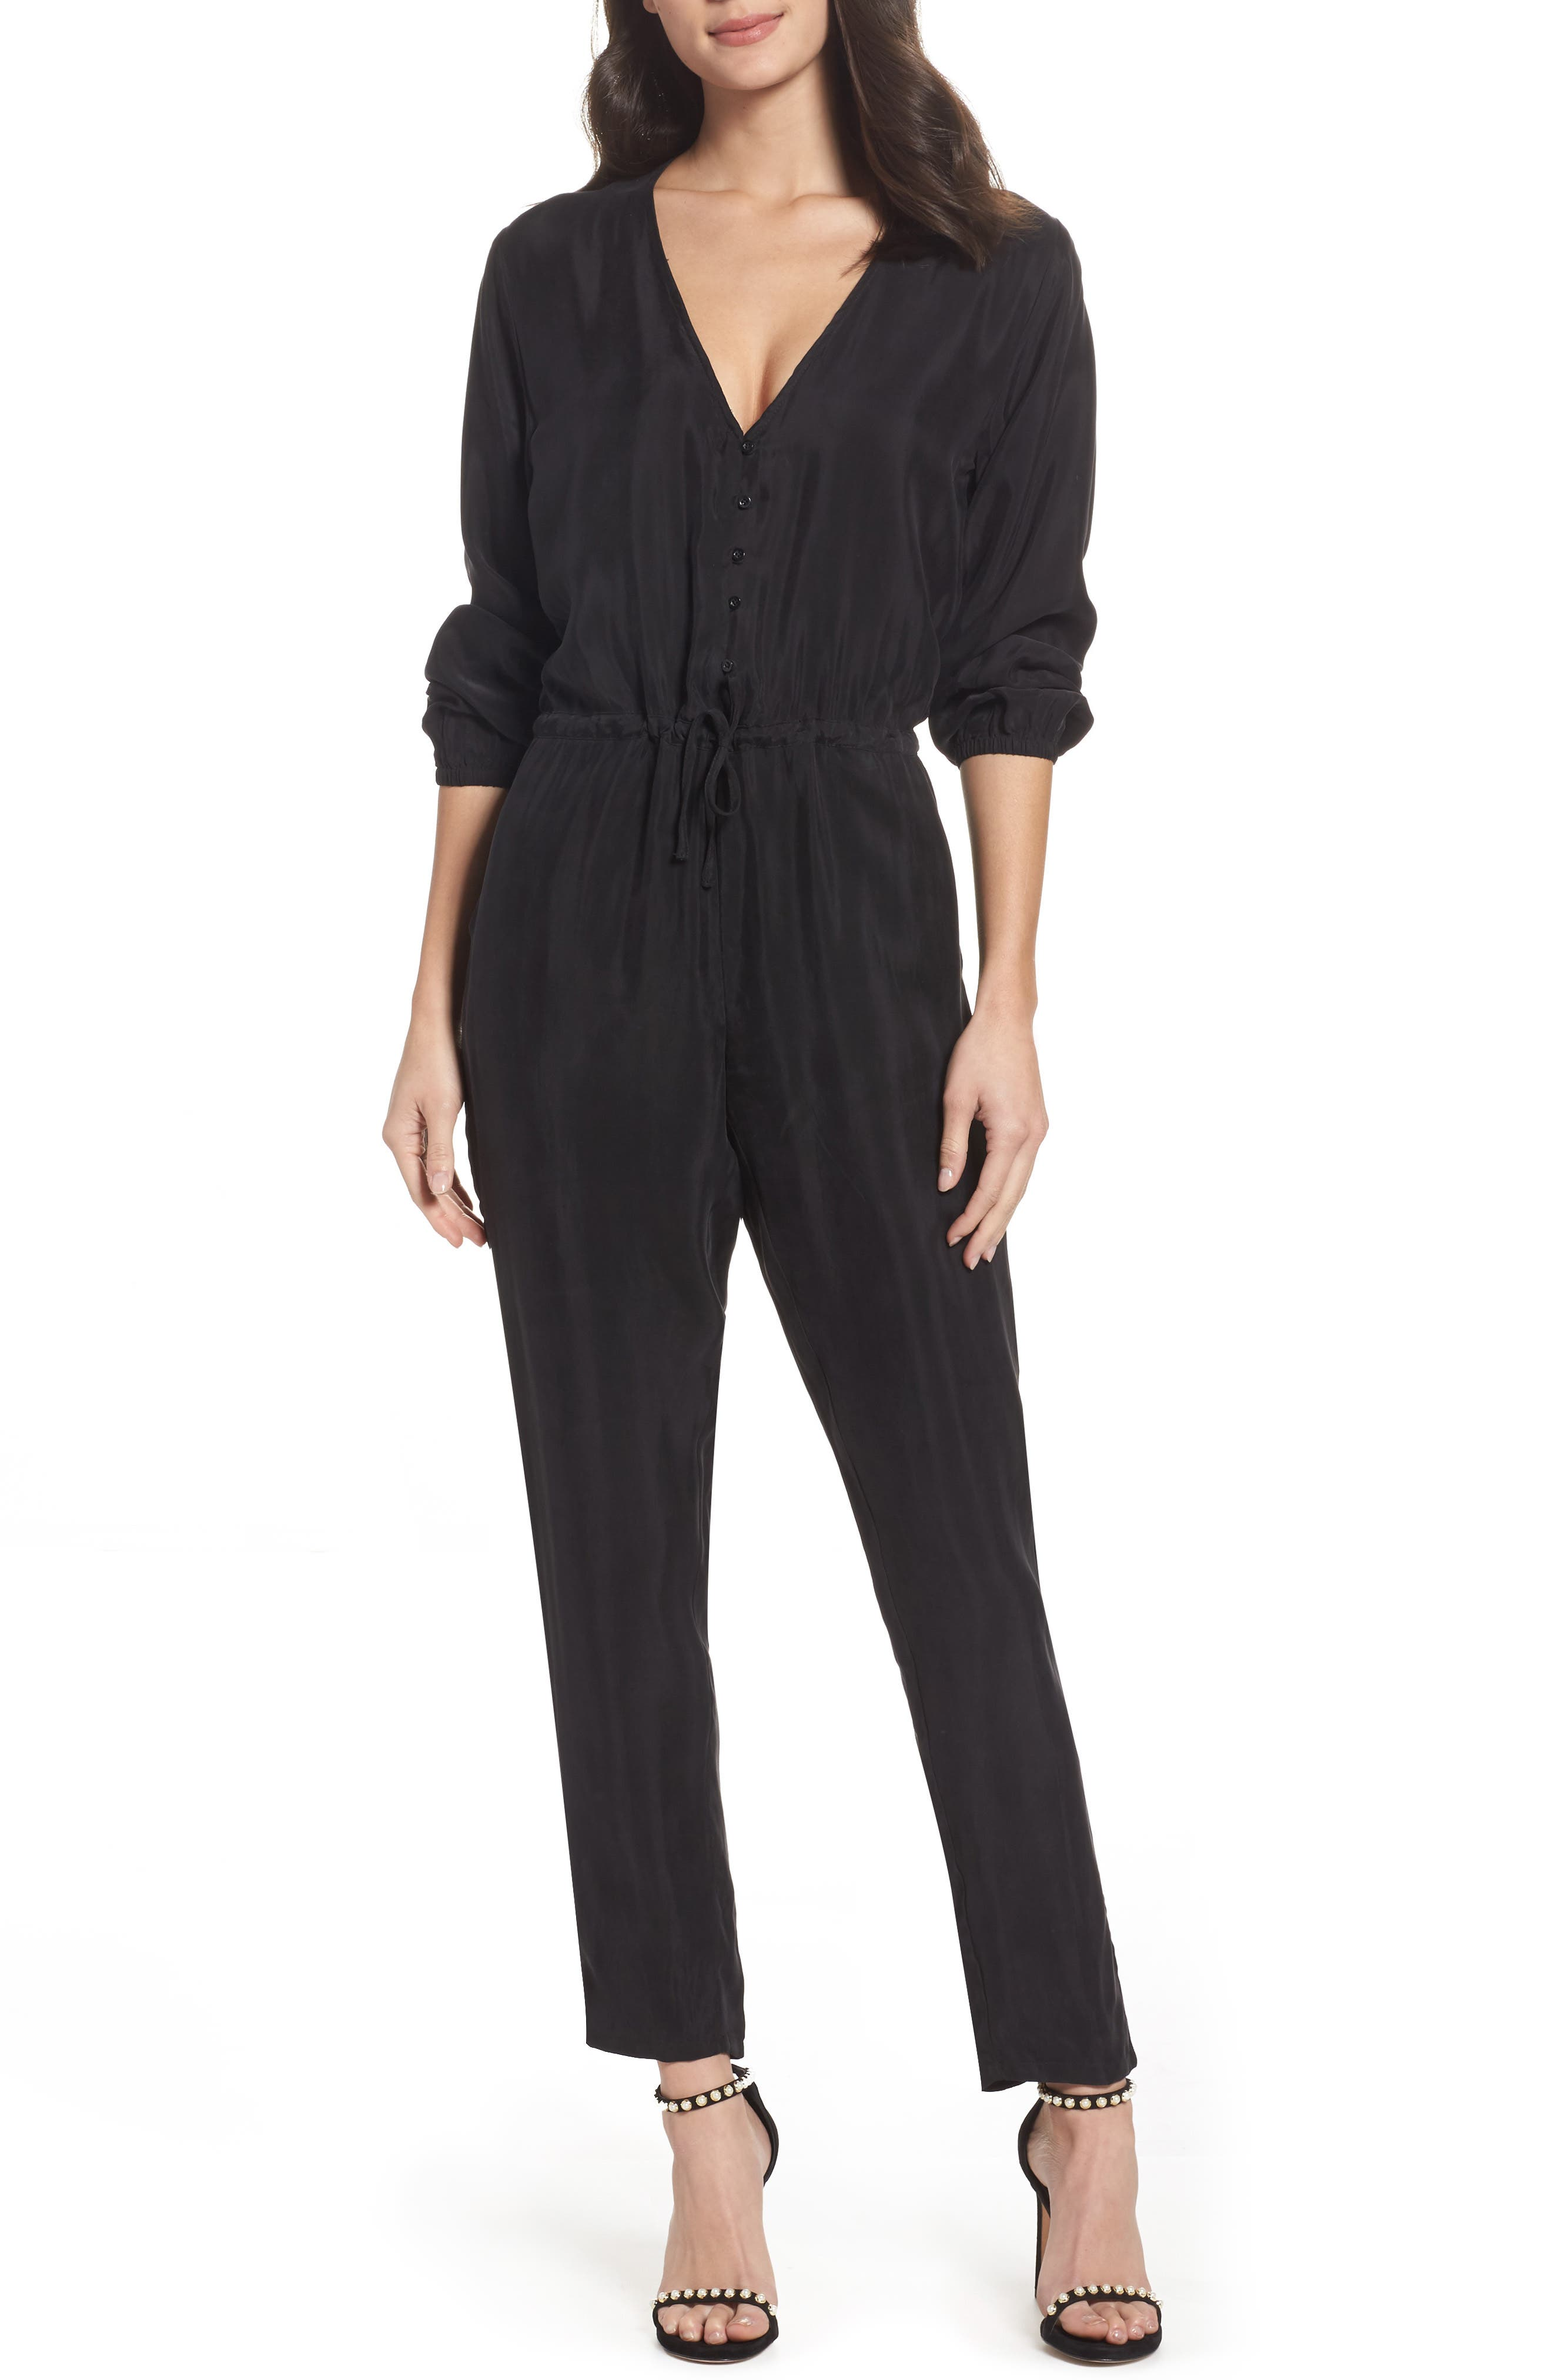 Elizabeth Jumpsuit,                         Main,                         color, 001